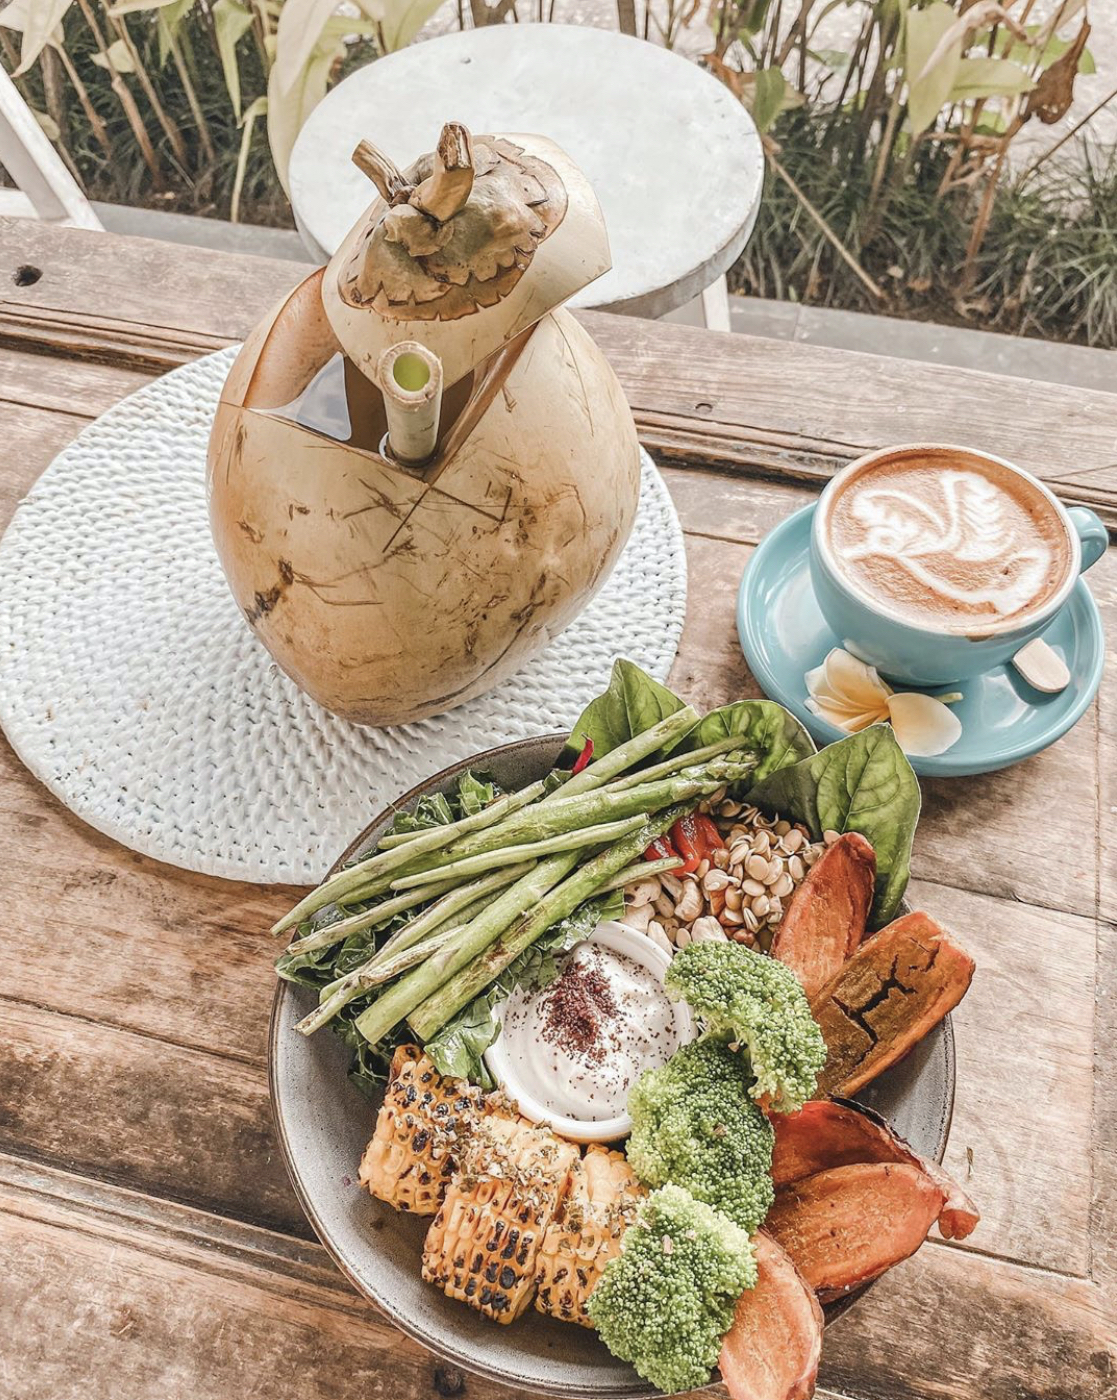 A coconut, a latte, and a plate of food at Shady Shack in Bali